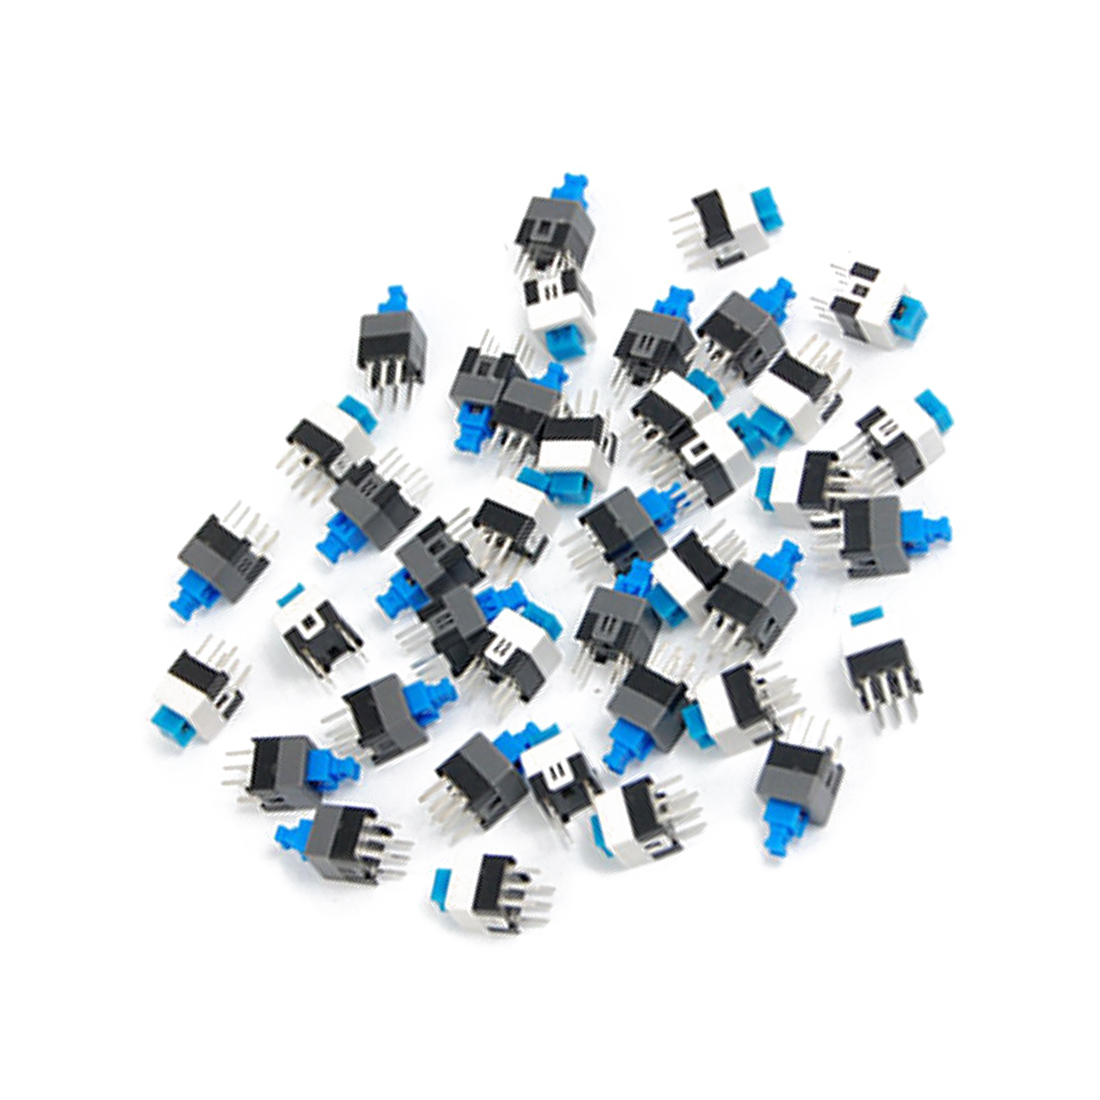 Promotion! 40 Pcs 7 x 7mm PCB Tact Tactile Push Button Switch Self Lock 6 Pin DIP